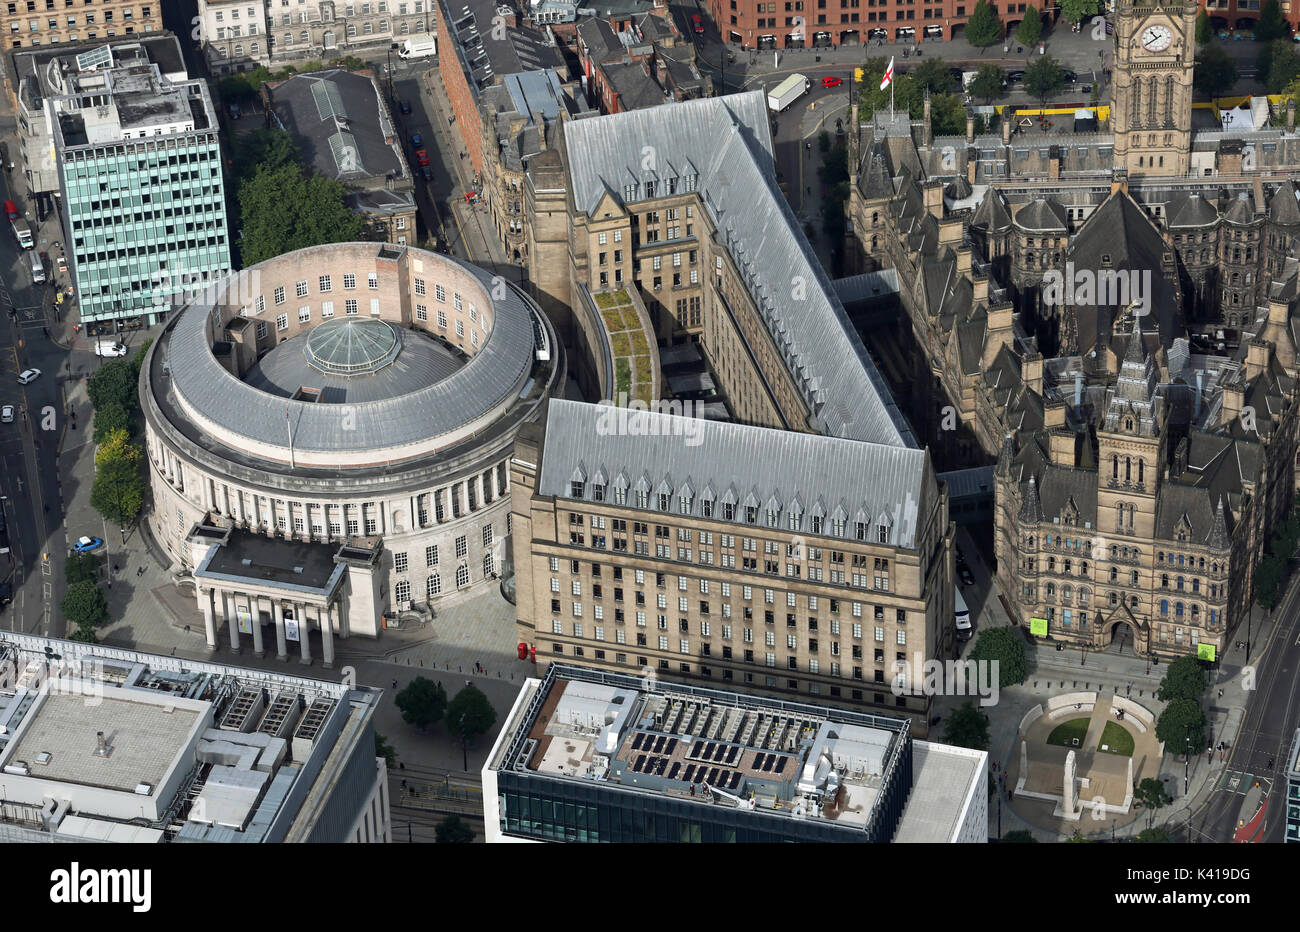 aerial view of Manchester Central Library - Stock Image